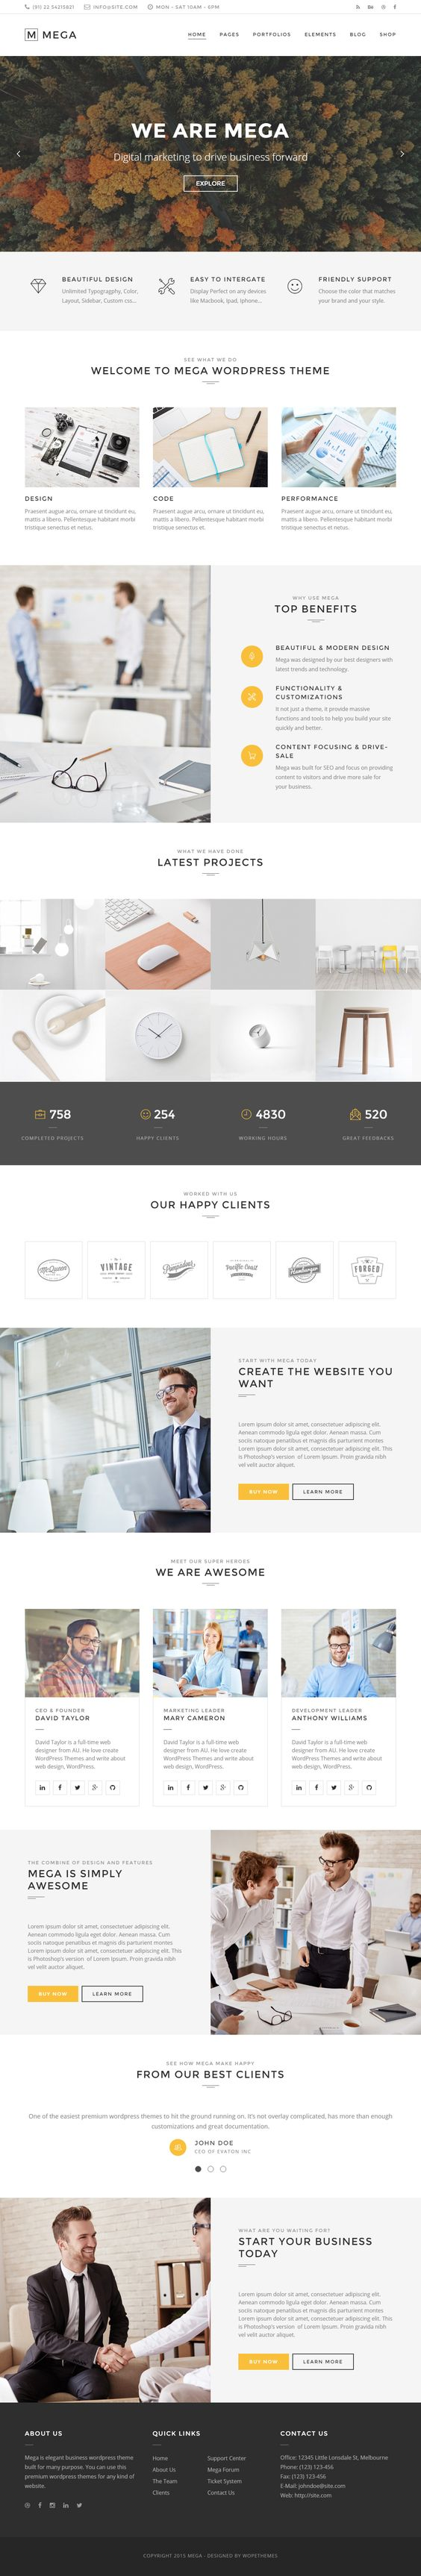 Mega is Premium full Responsive Retina #WordPress MultiPurpose Theme. WooCommerce. #MinimalDesign. Google Fonts. SEO Friendly. Test free demo at: http://www.responsivemiracle.com/cms/mega-premium-responsive-creative-multipurpose-wordpress-theme/